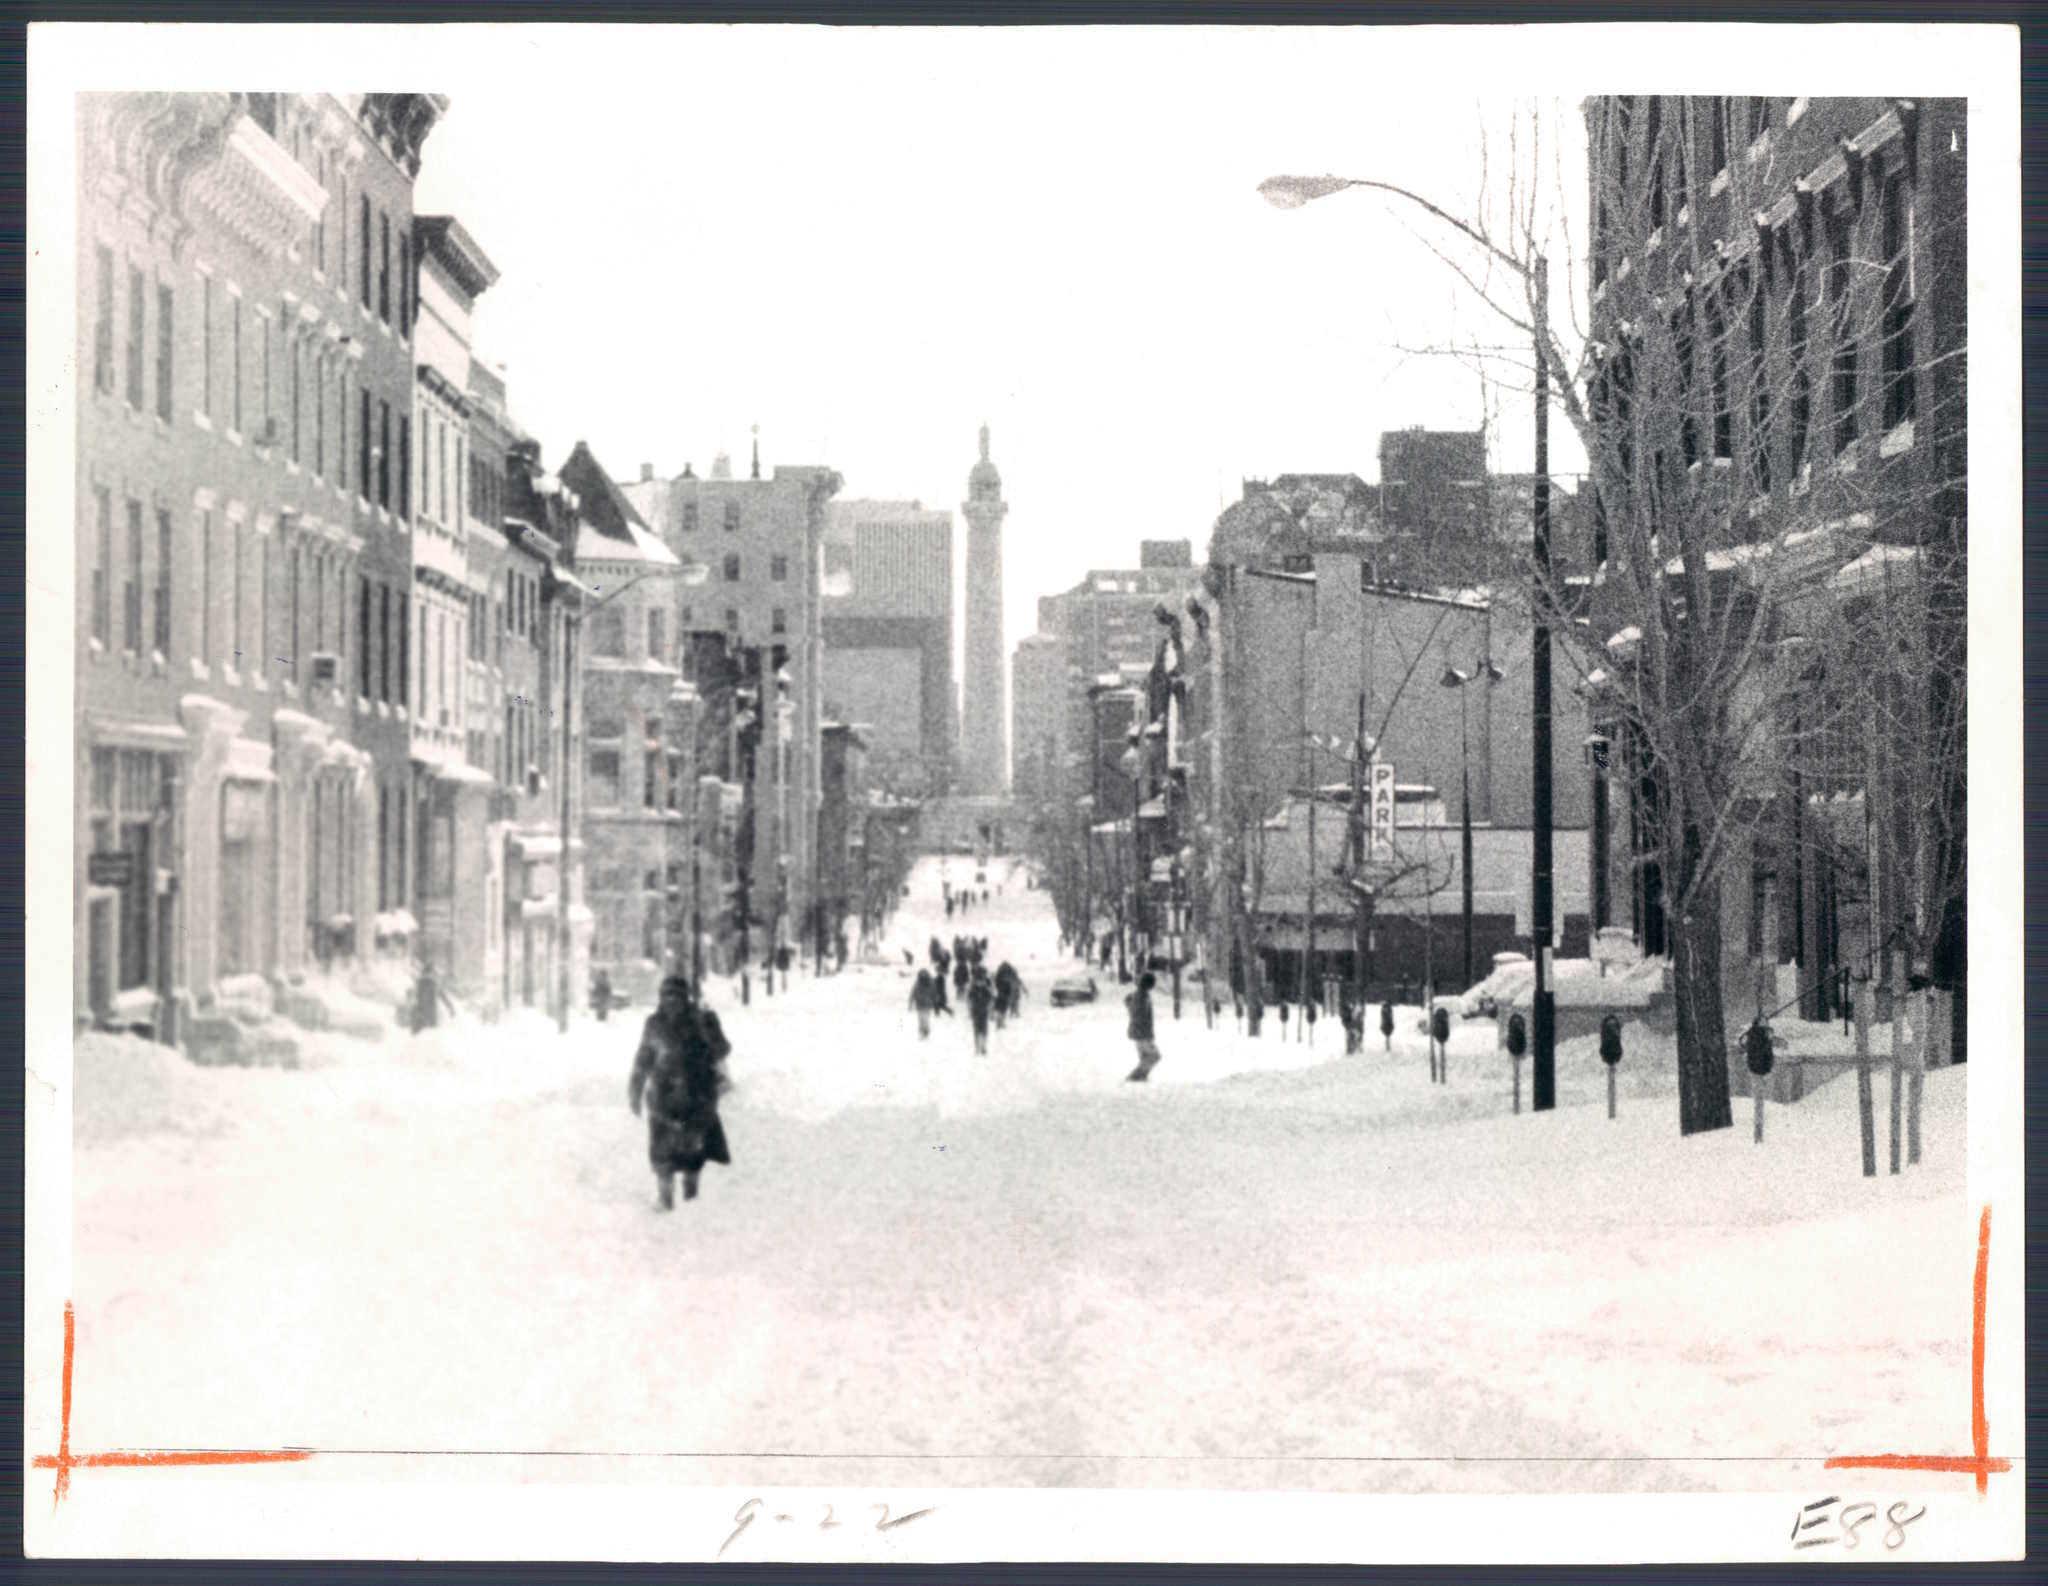 Retro Baltimore, As the 'Blizzard of '79′ proved, forecasters don't